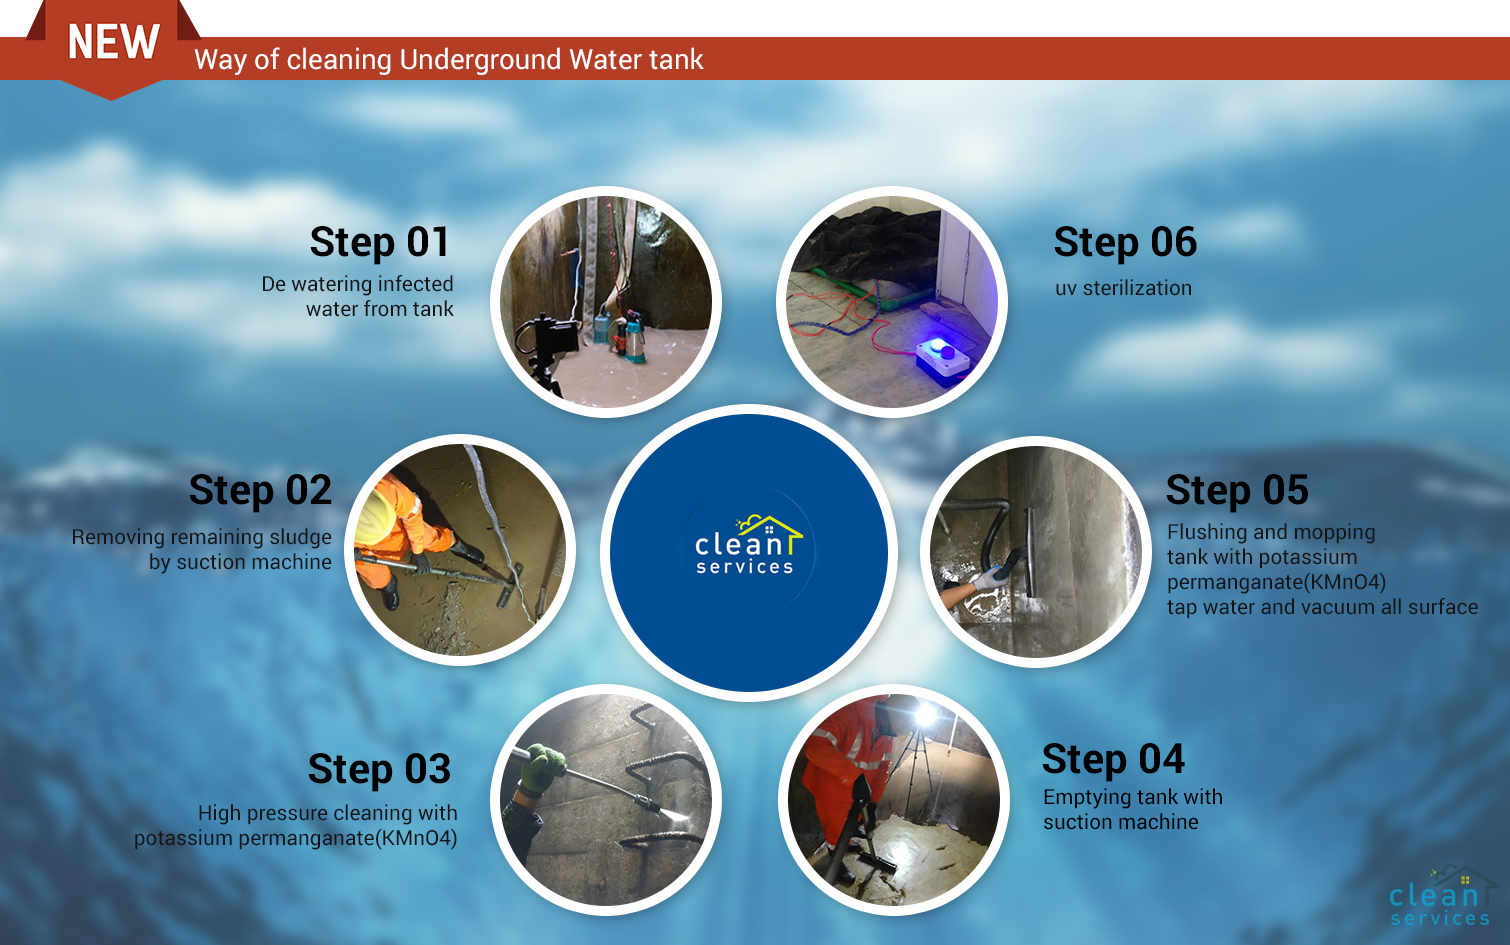 underground water tank cleaning steps to make it hygiene